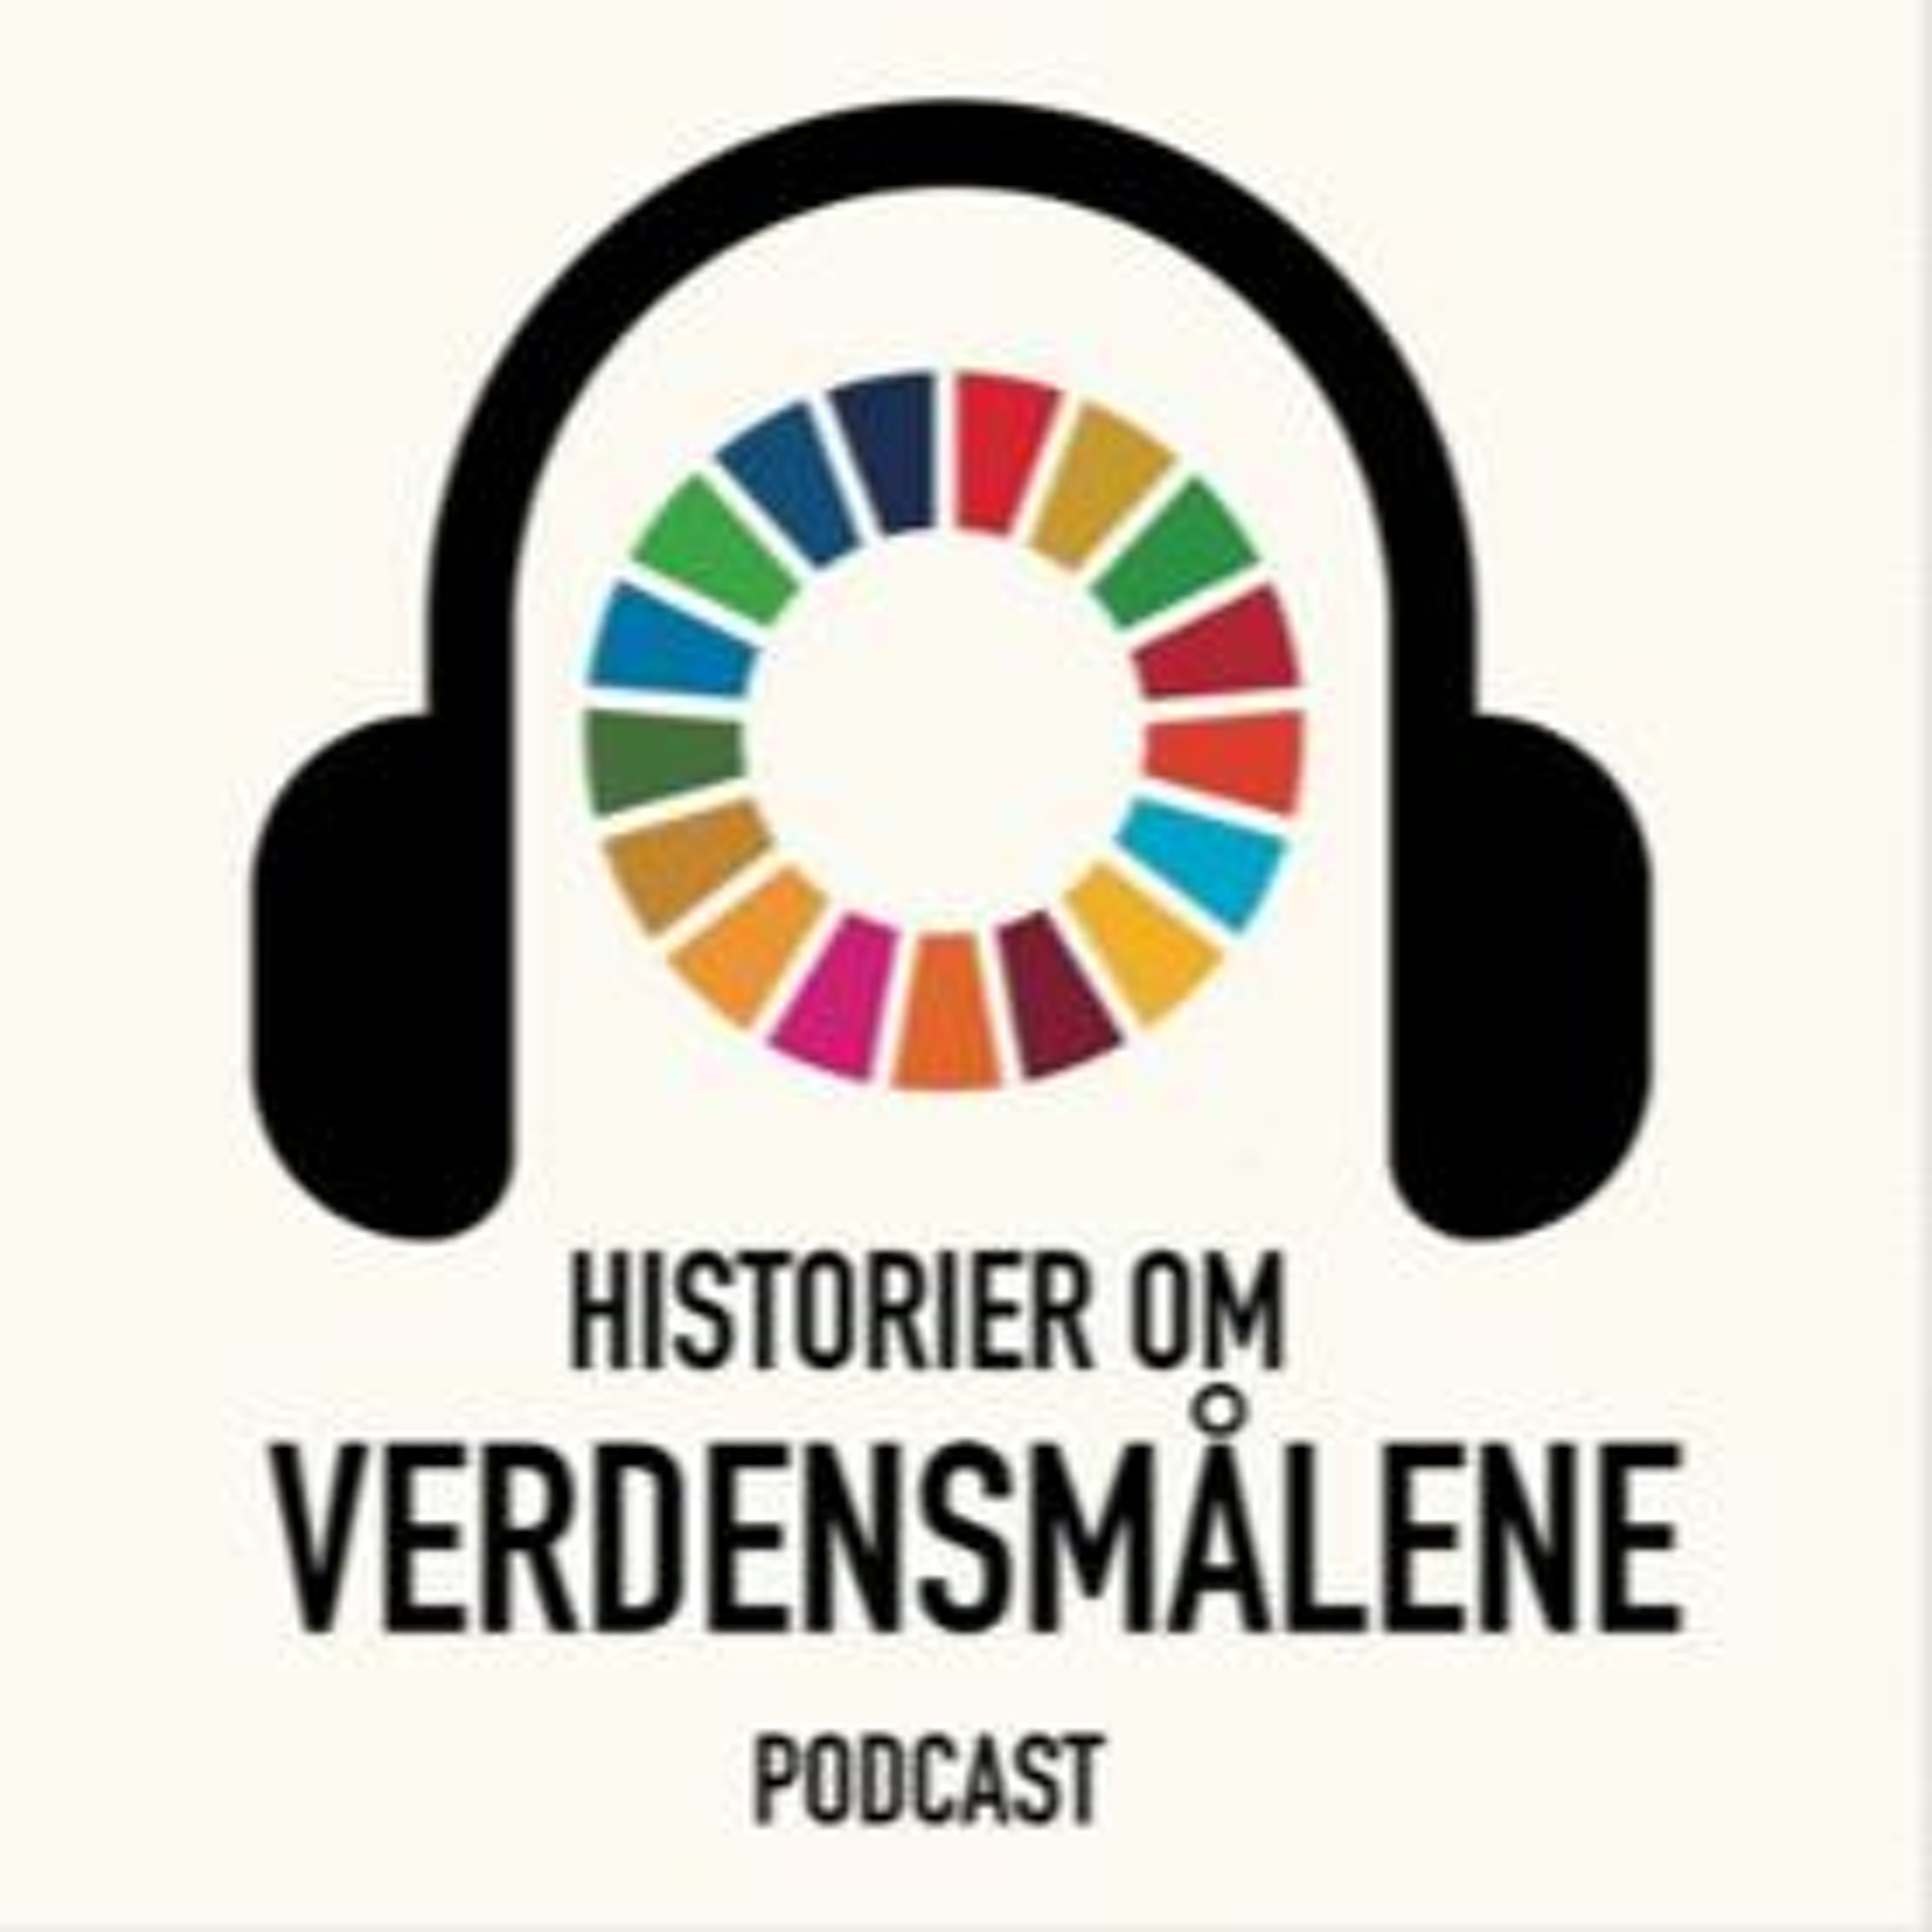 JEFFERY SACHS - Stories about the Global Goals